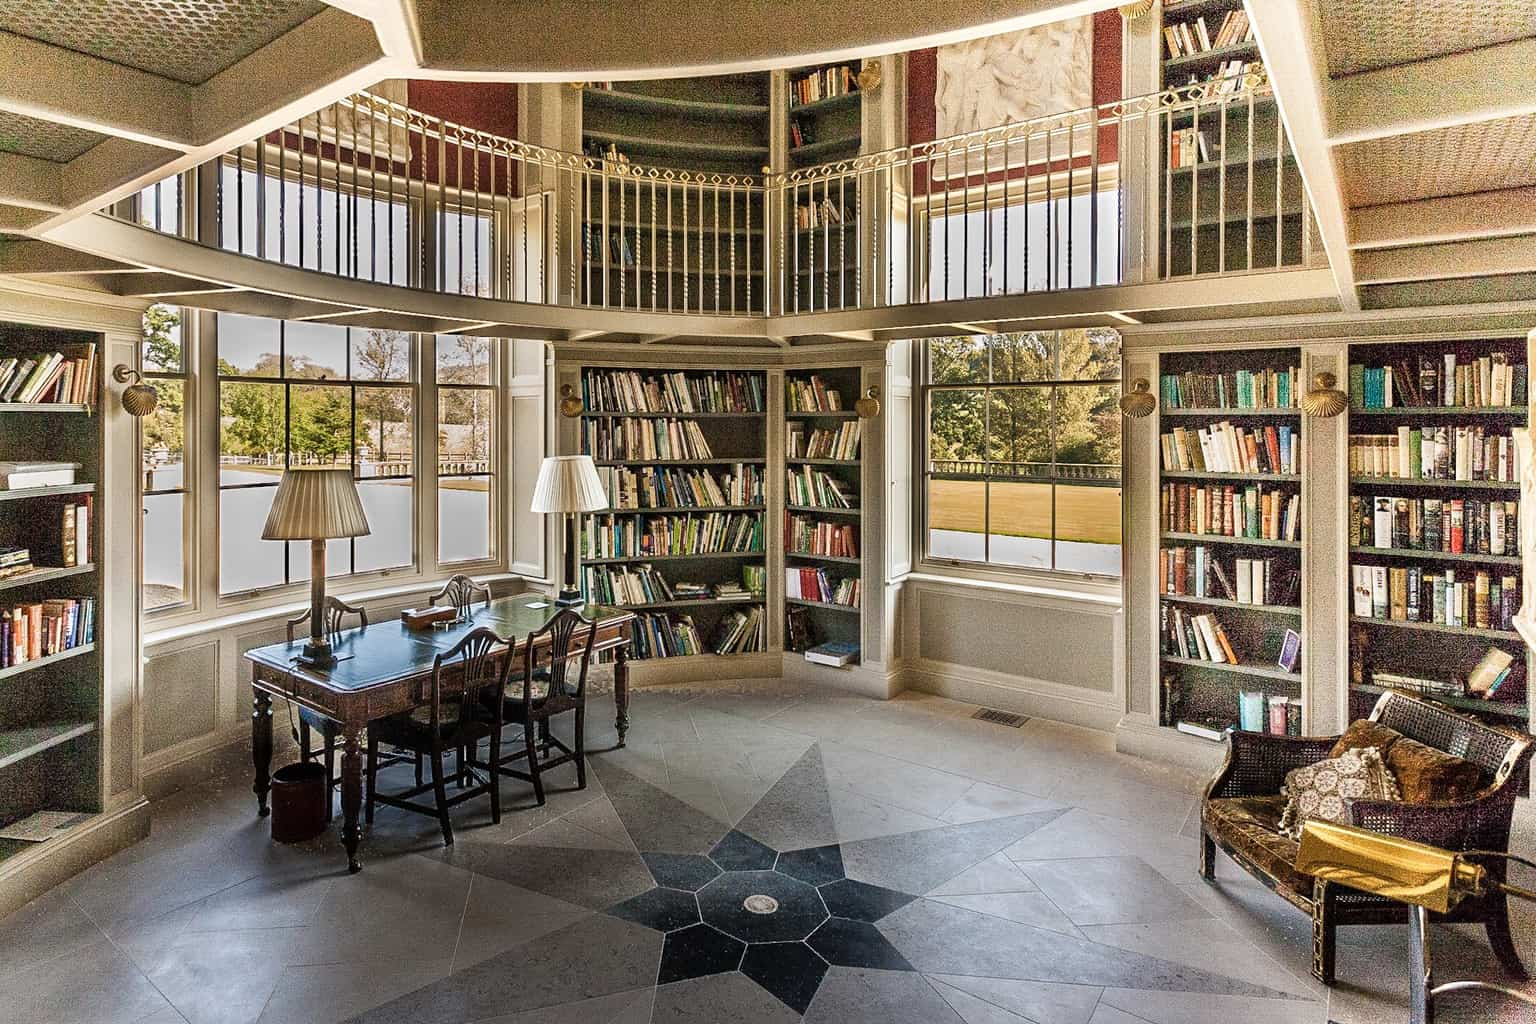 Library by Rick McEvoy interior photographer in Dorset